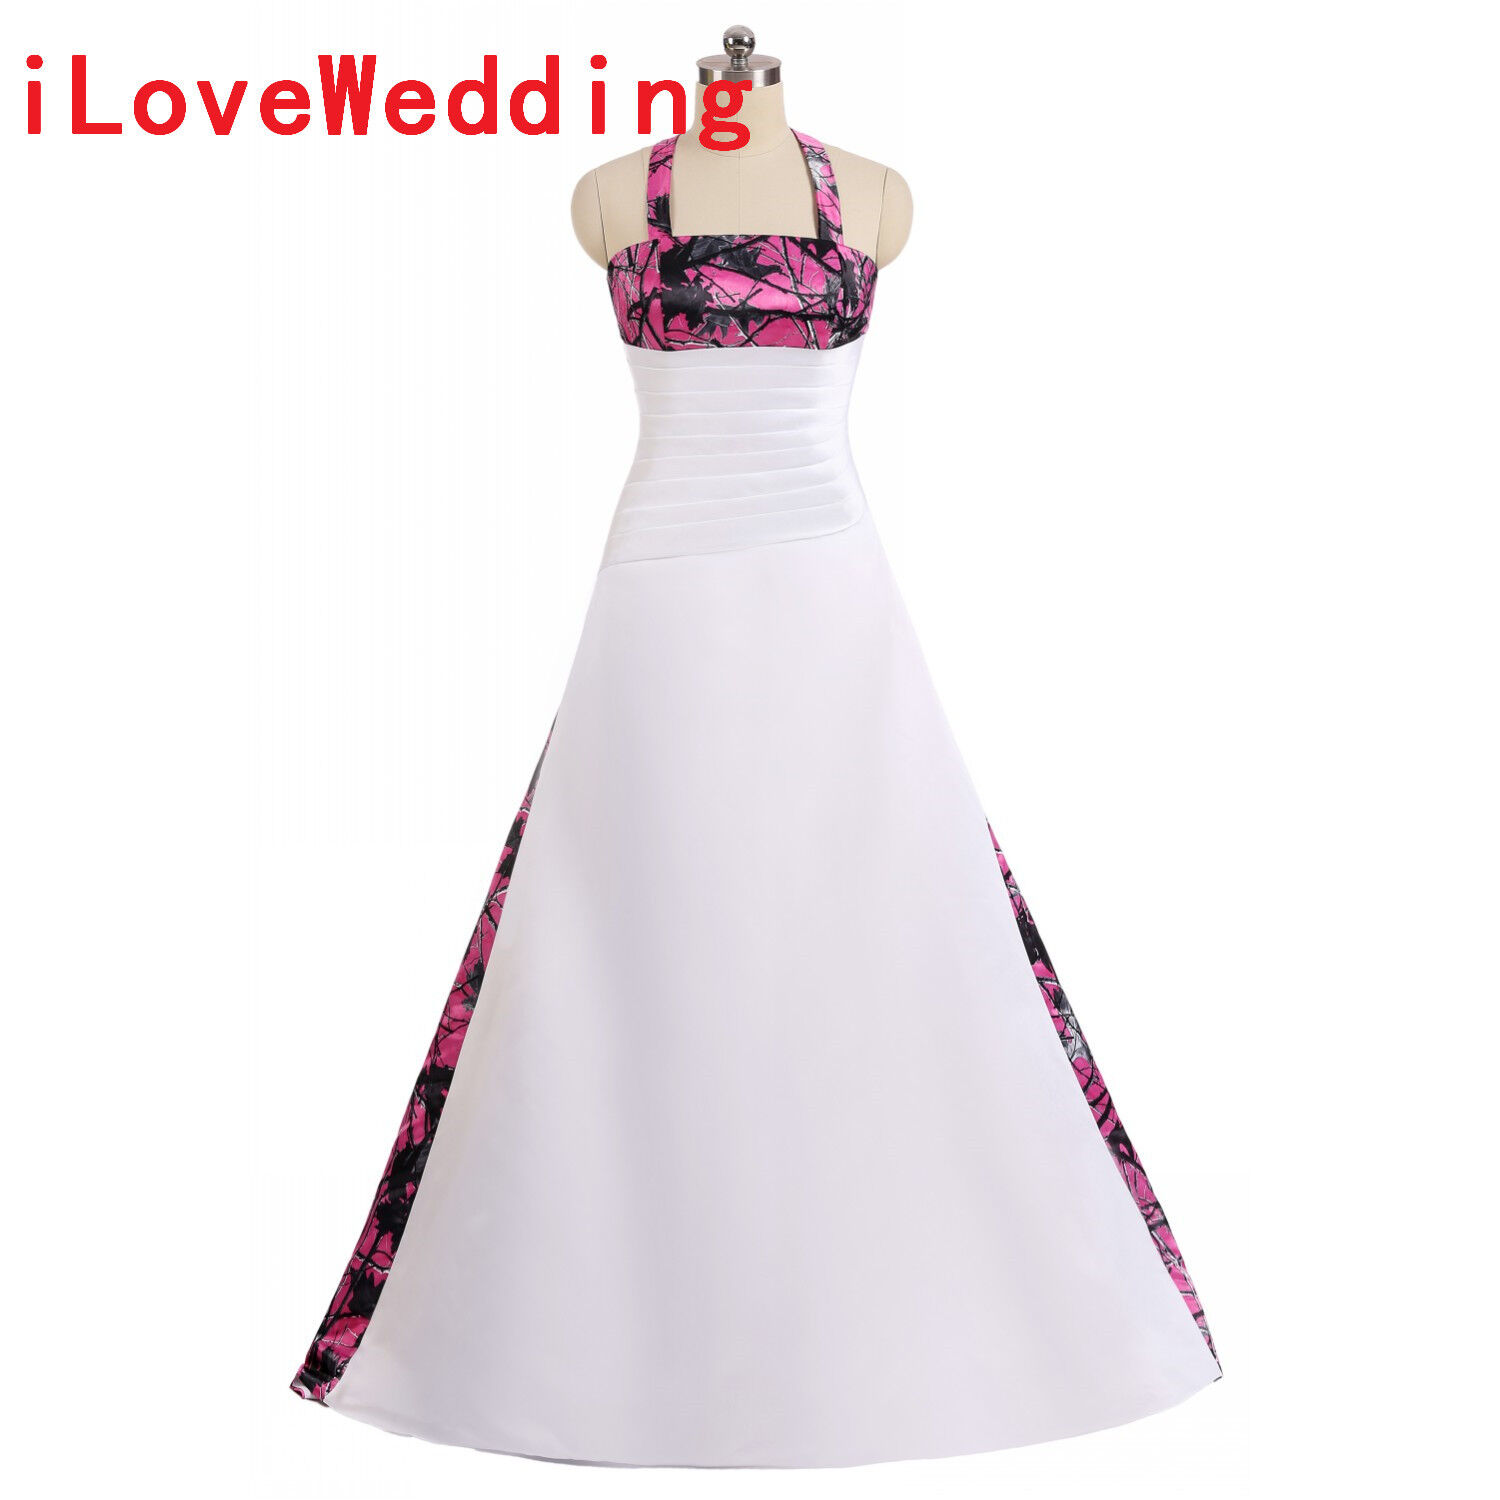 New Camo Wedding Dresses Halter Ball Gown White Fuchsia Camouflage Bridal Gowns Ebay